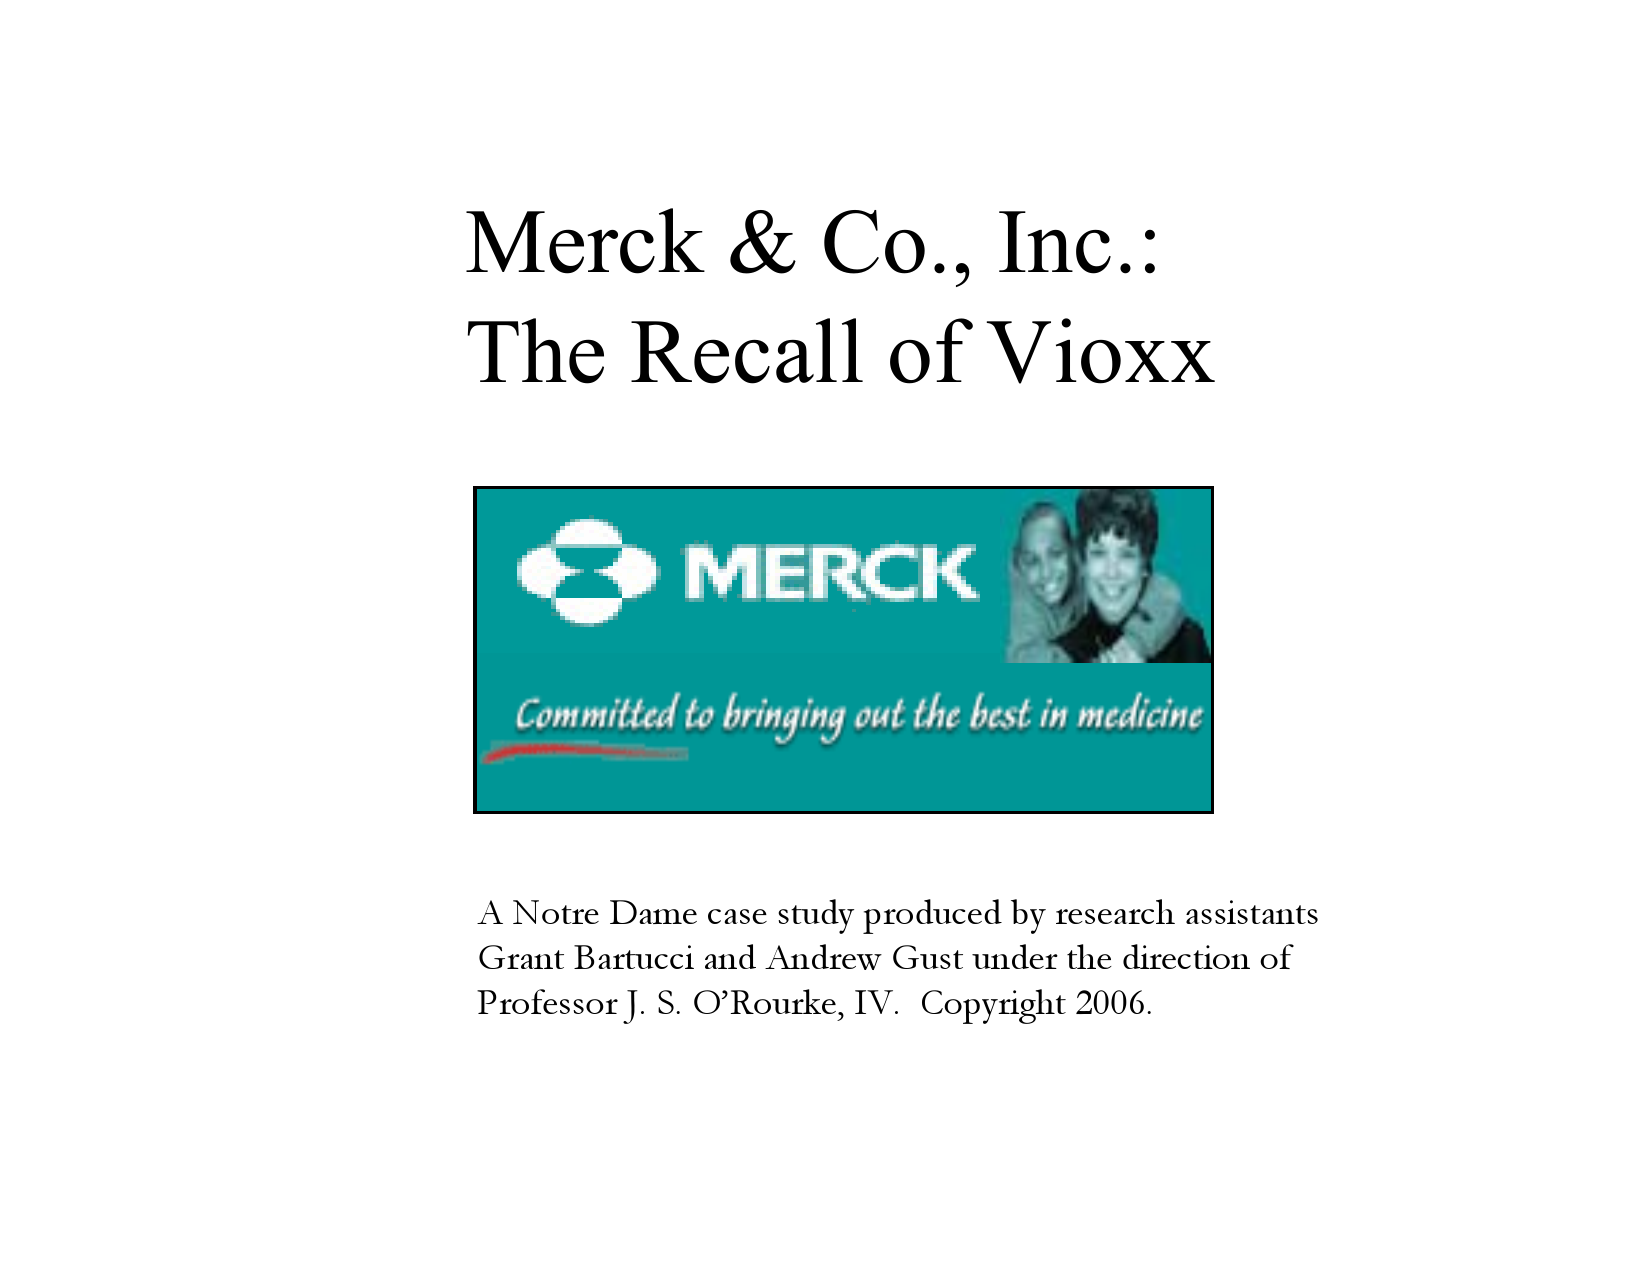 merck the fda and the vioxx recall case study answers